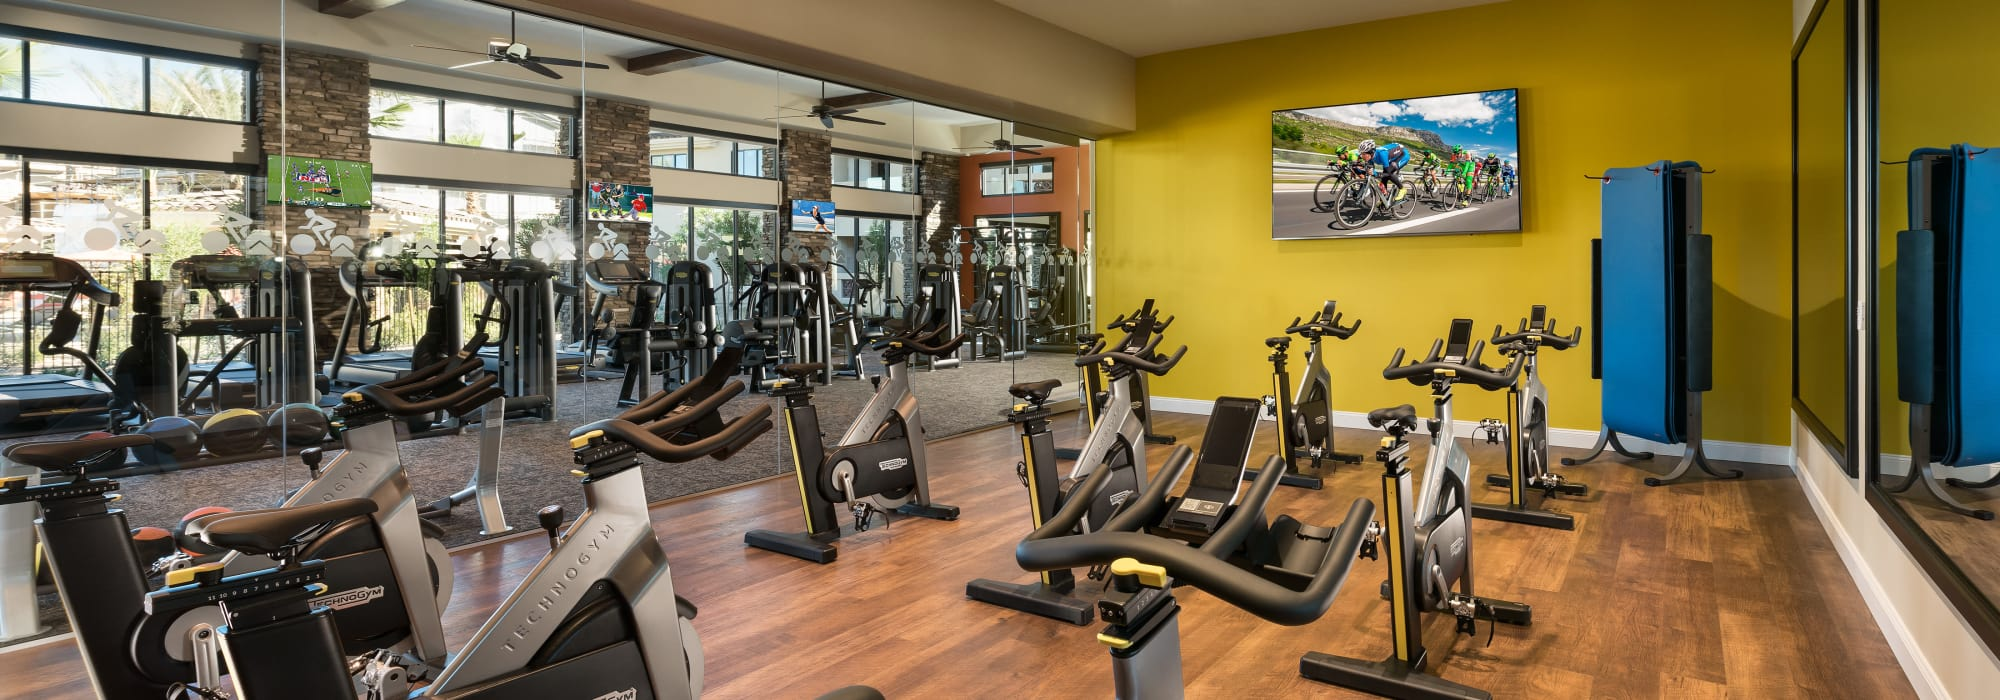 Spin class room at San Piedra in Mesa, Arizona